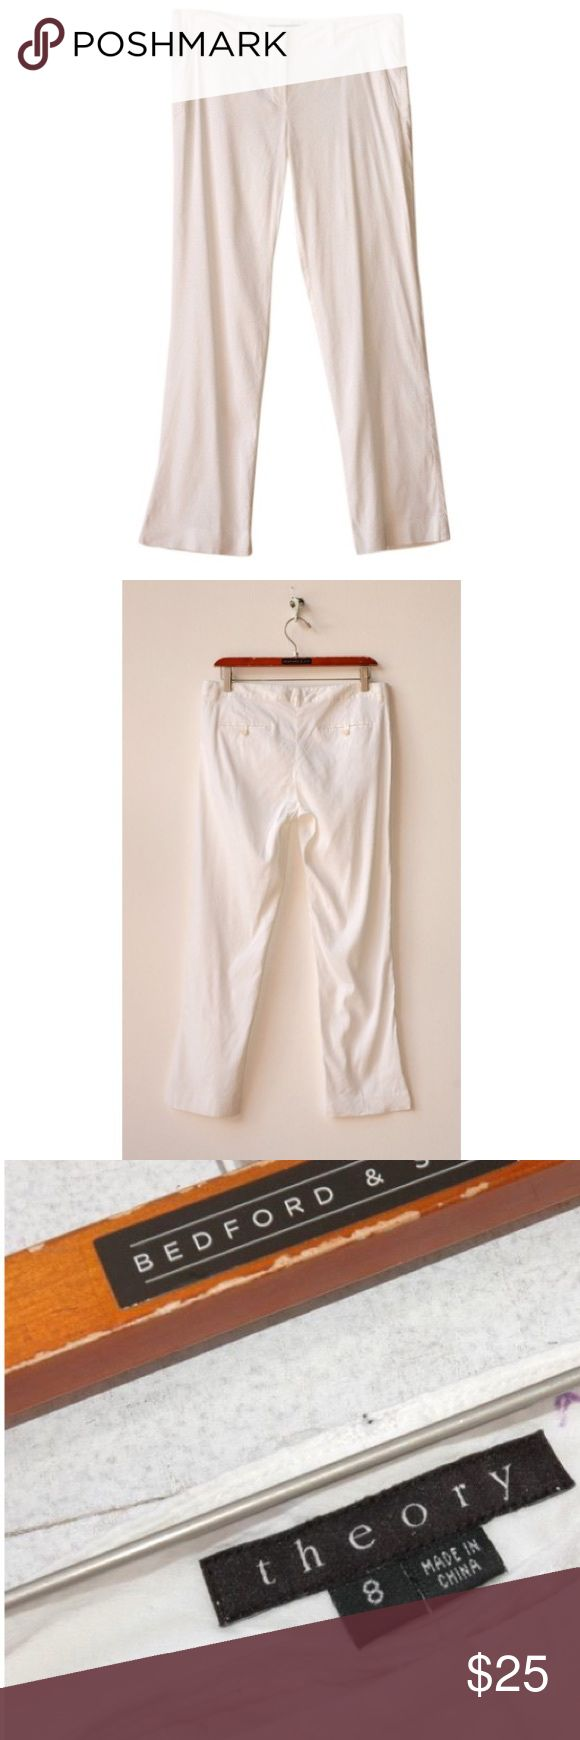 THEORY linen stretch pants BTHE0001  LPU15    * 62% linen, 36% viscose, 2% spandex    Label : theory  Marked size : 8  Estimated size : 8  Color : white  Measurements : shoulder to shoulder: - inches // chest: - inches // waist: 16 inches // rise: 11 inches // length: 27.5 inches  Condition: gently worn  Description: slim leg linen trousers Theory Pants Straight Leg